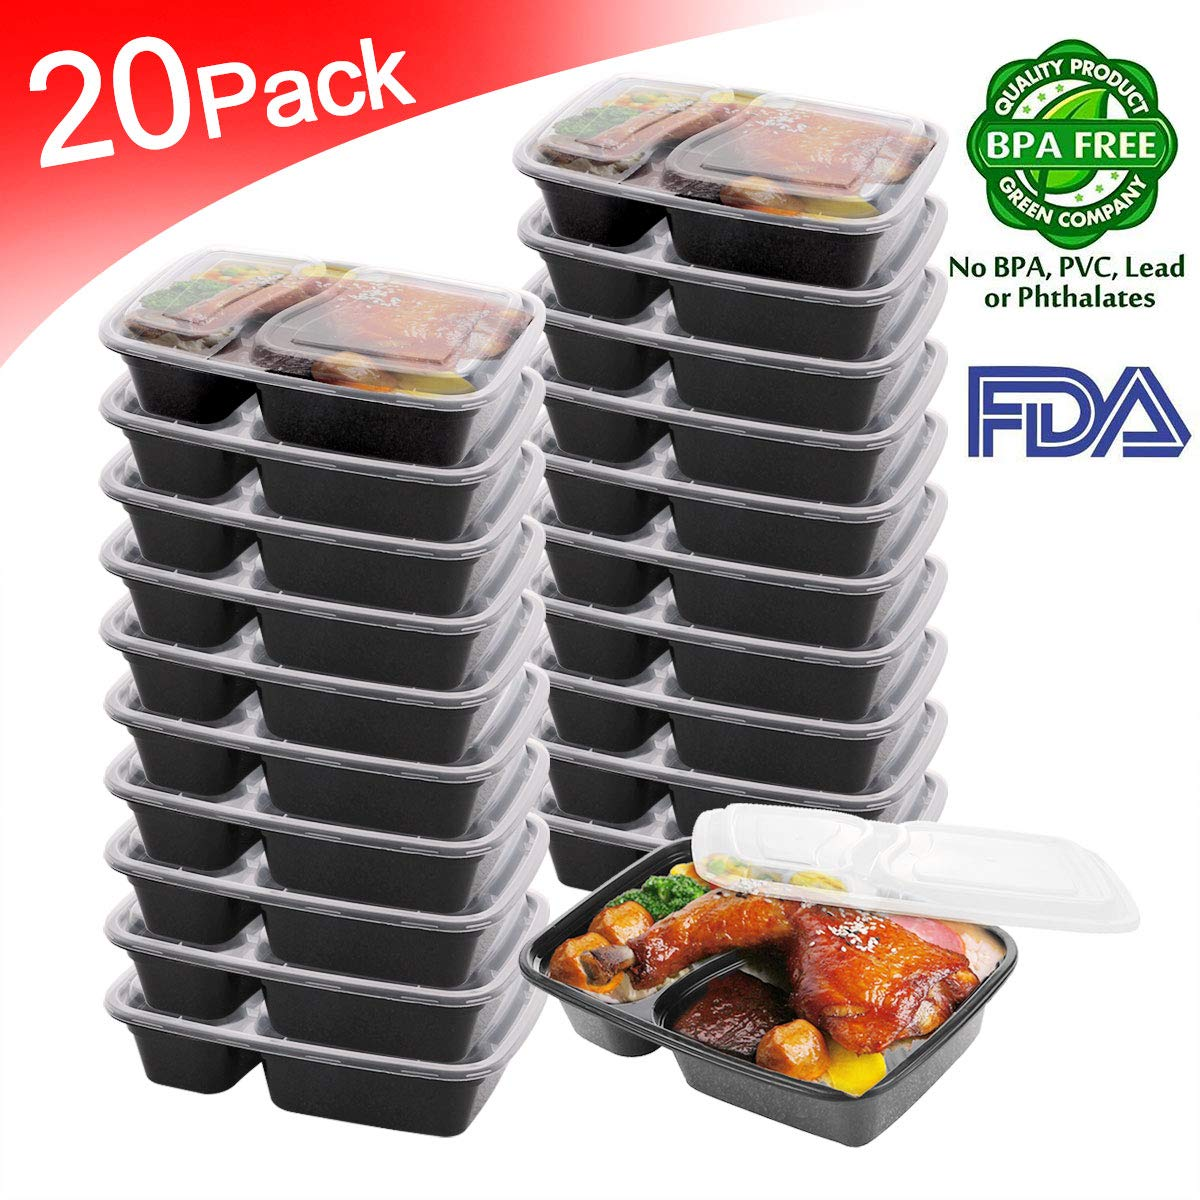 Bento Box Meal Prep Containers 2 Compartment [20pack] Food Storage Containers |BPA Free | Stackable |BPA Free|Reusable Lunch Boxes,Microwave/Dishwashe/Freezer Safe,Portion Control (34 oz) …